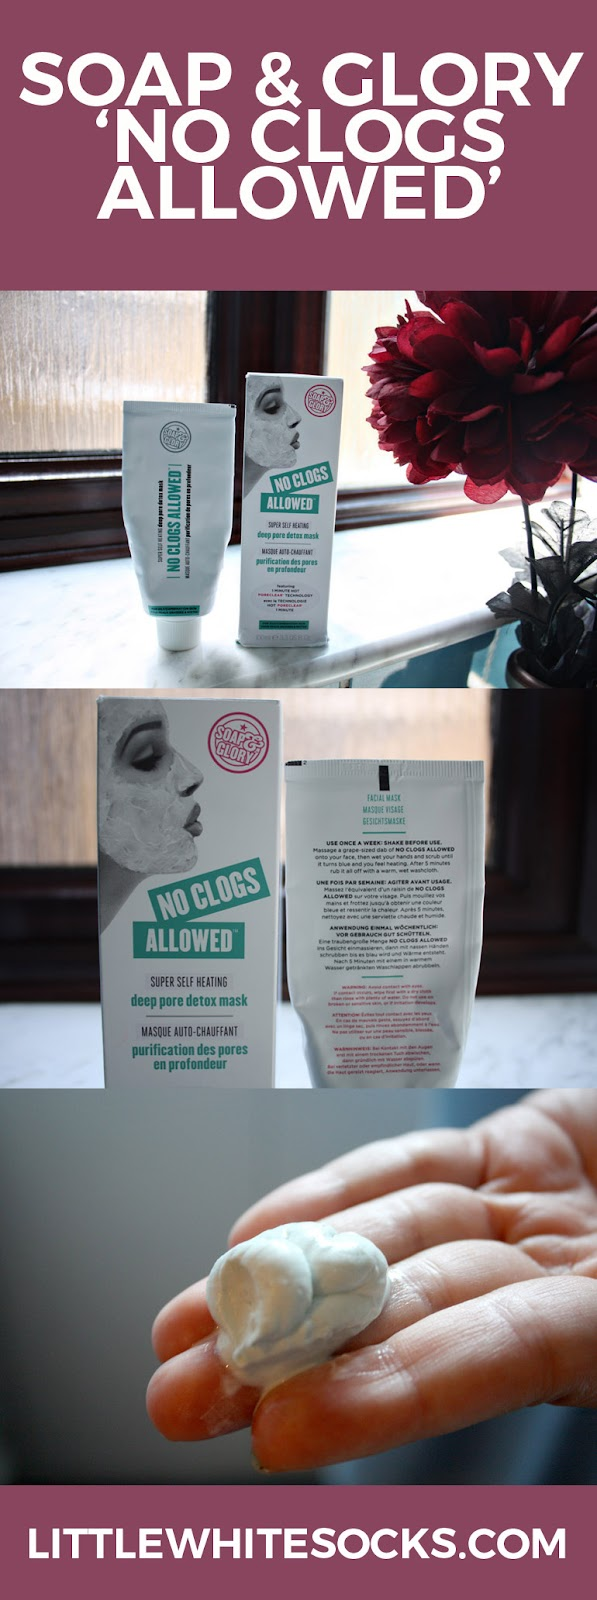 soap and glory no clogs allowed face mask